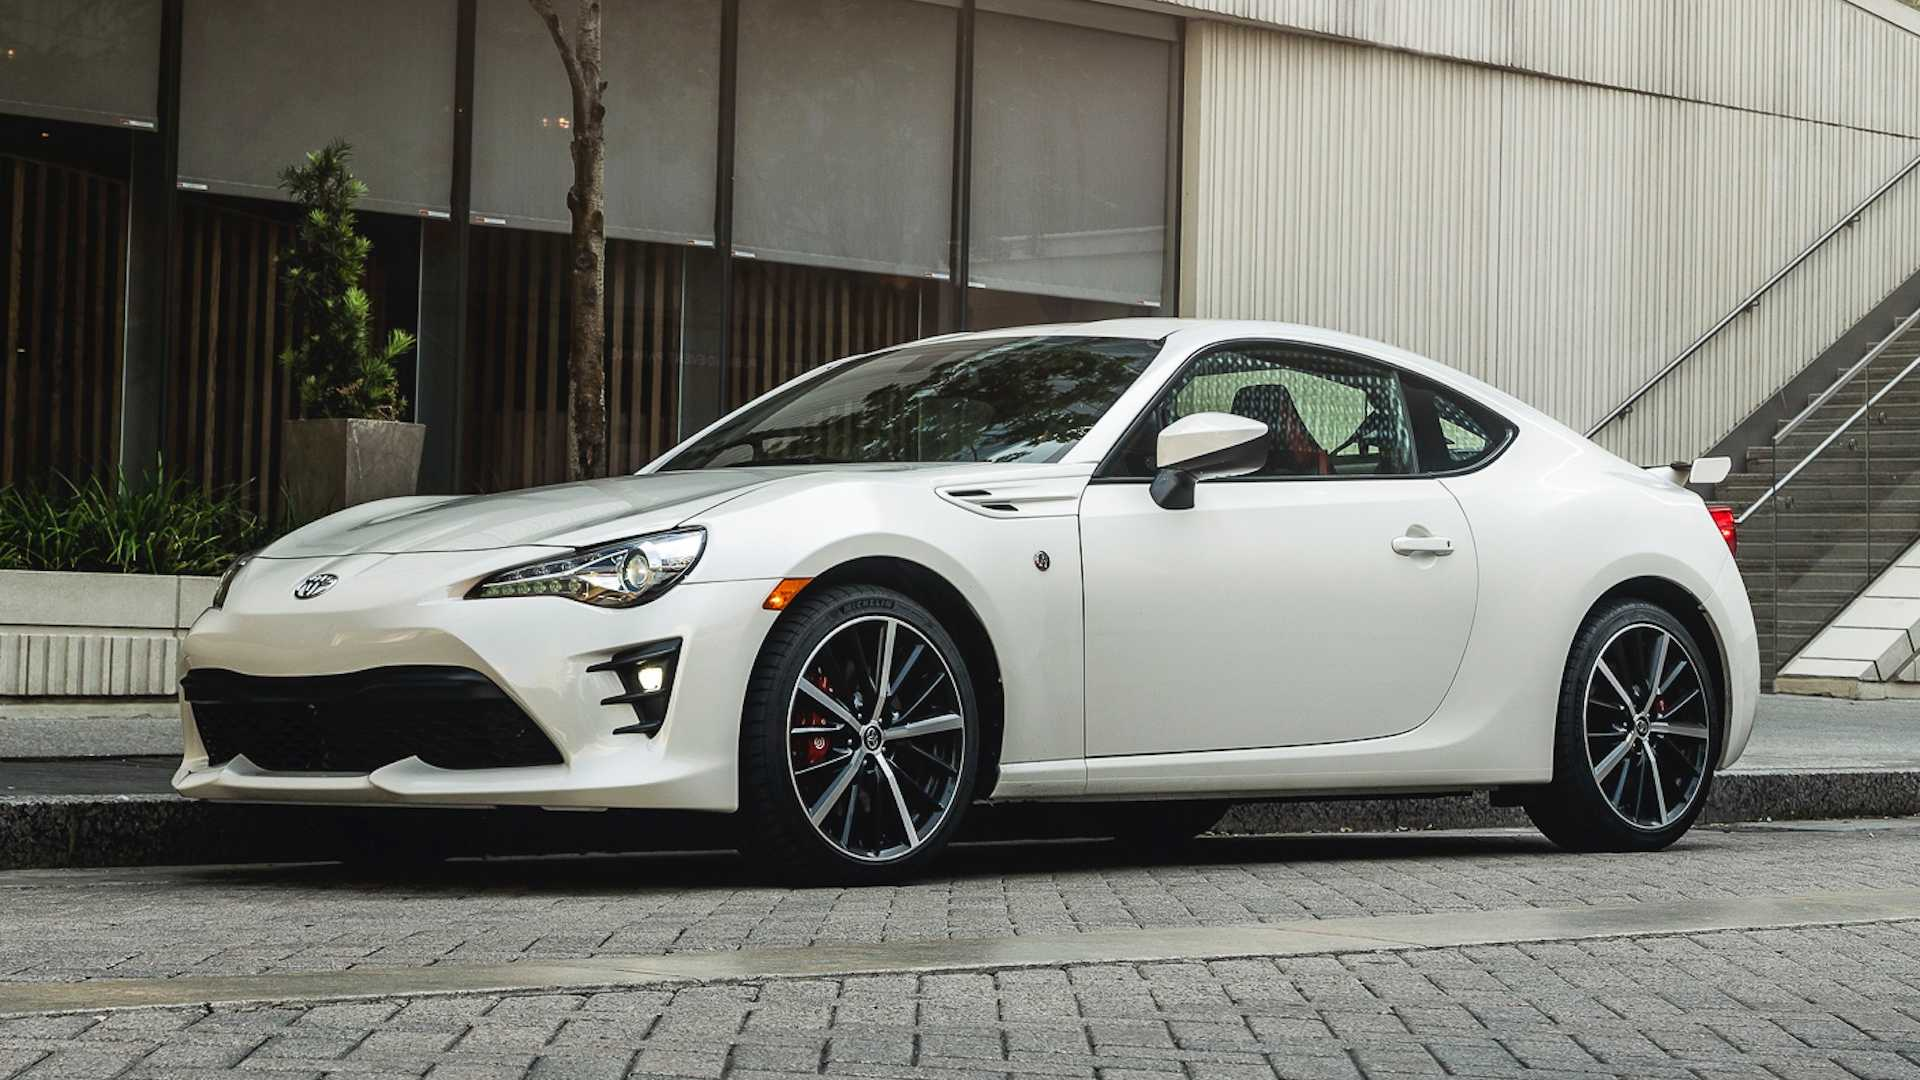 2020 Toyota 86 Gets Grippier With Trd Handling Package